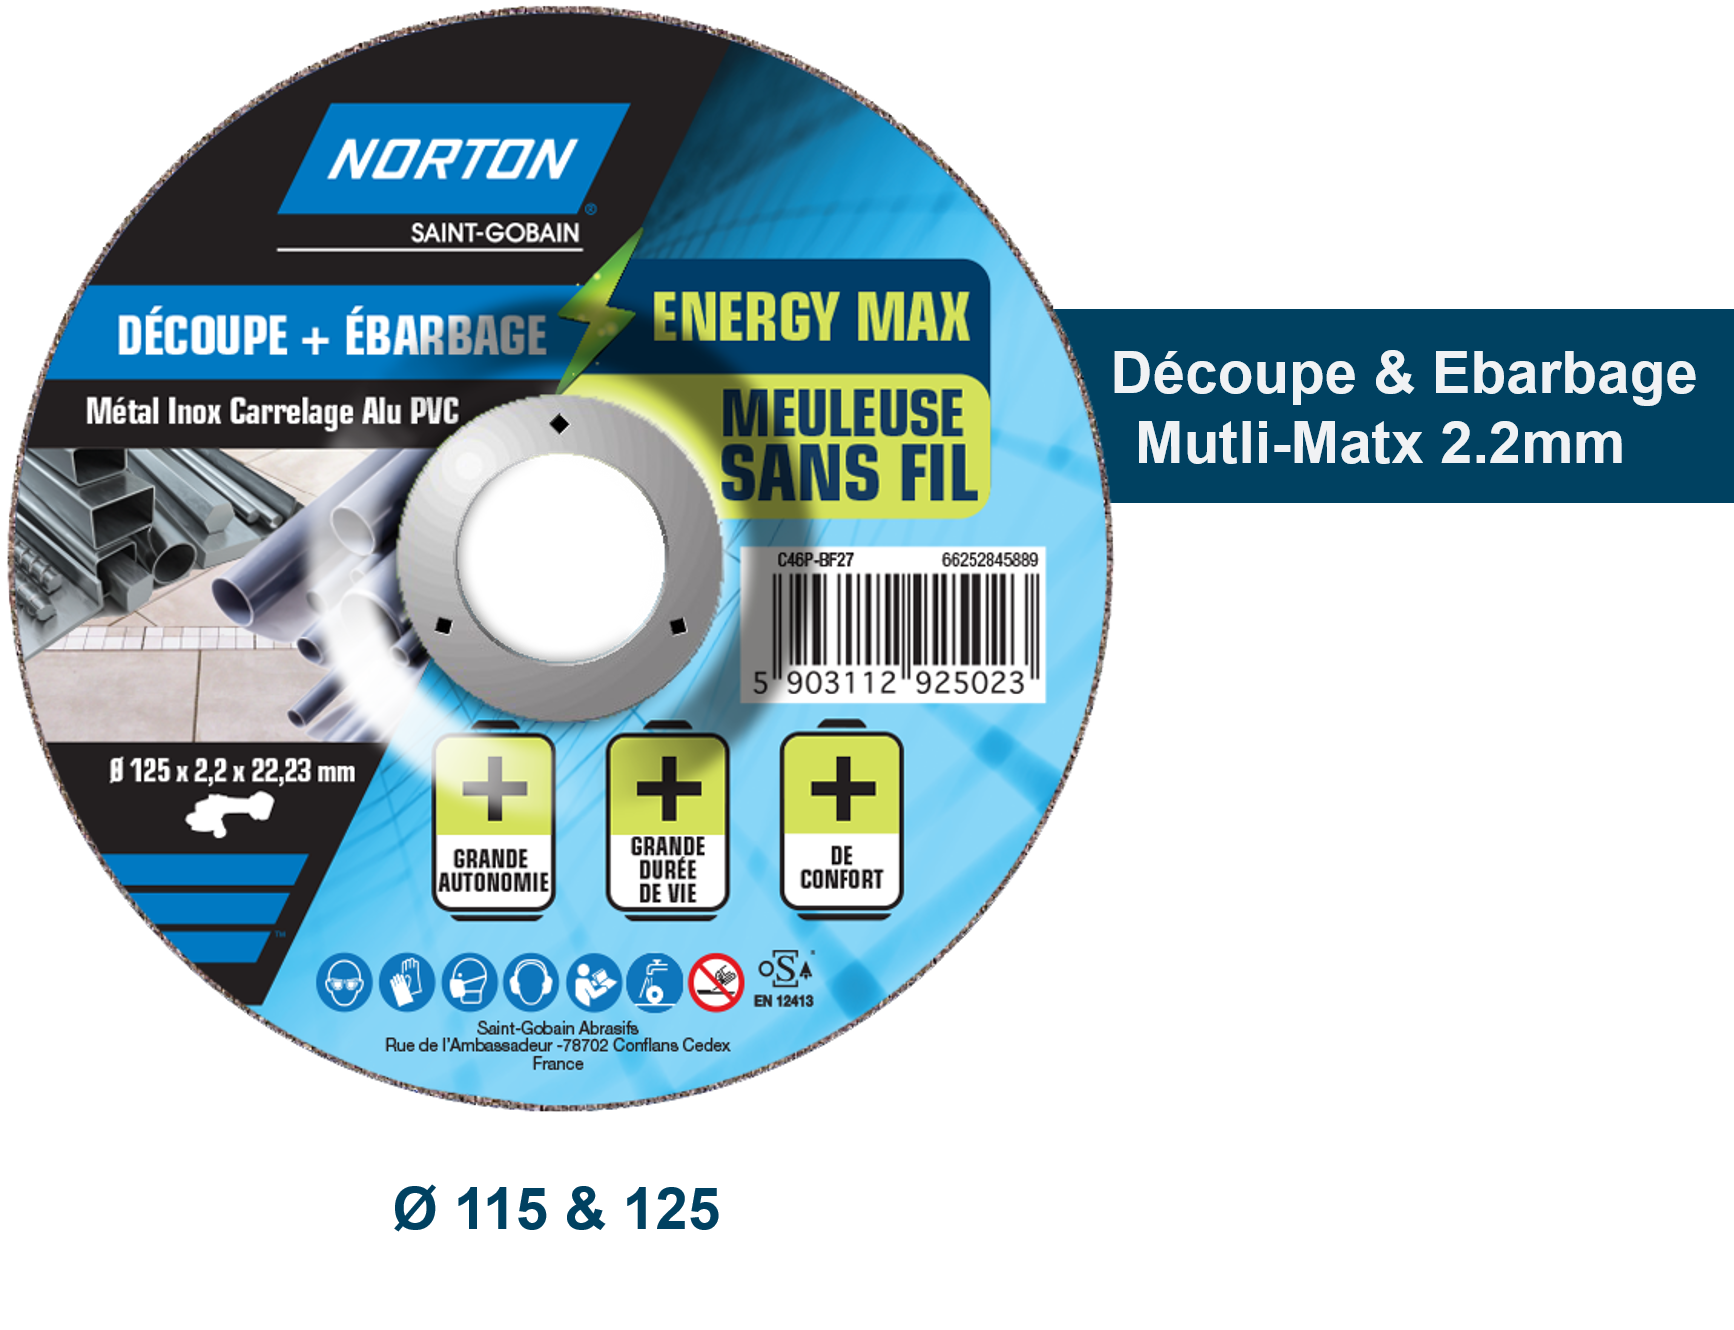 Energy Max 2.2mm